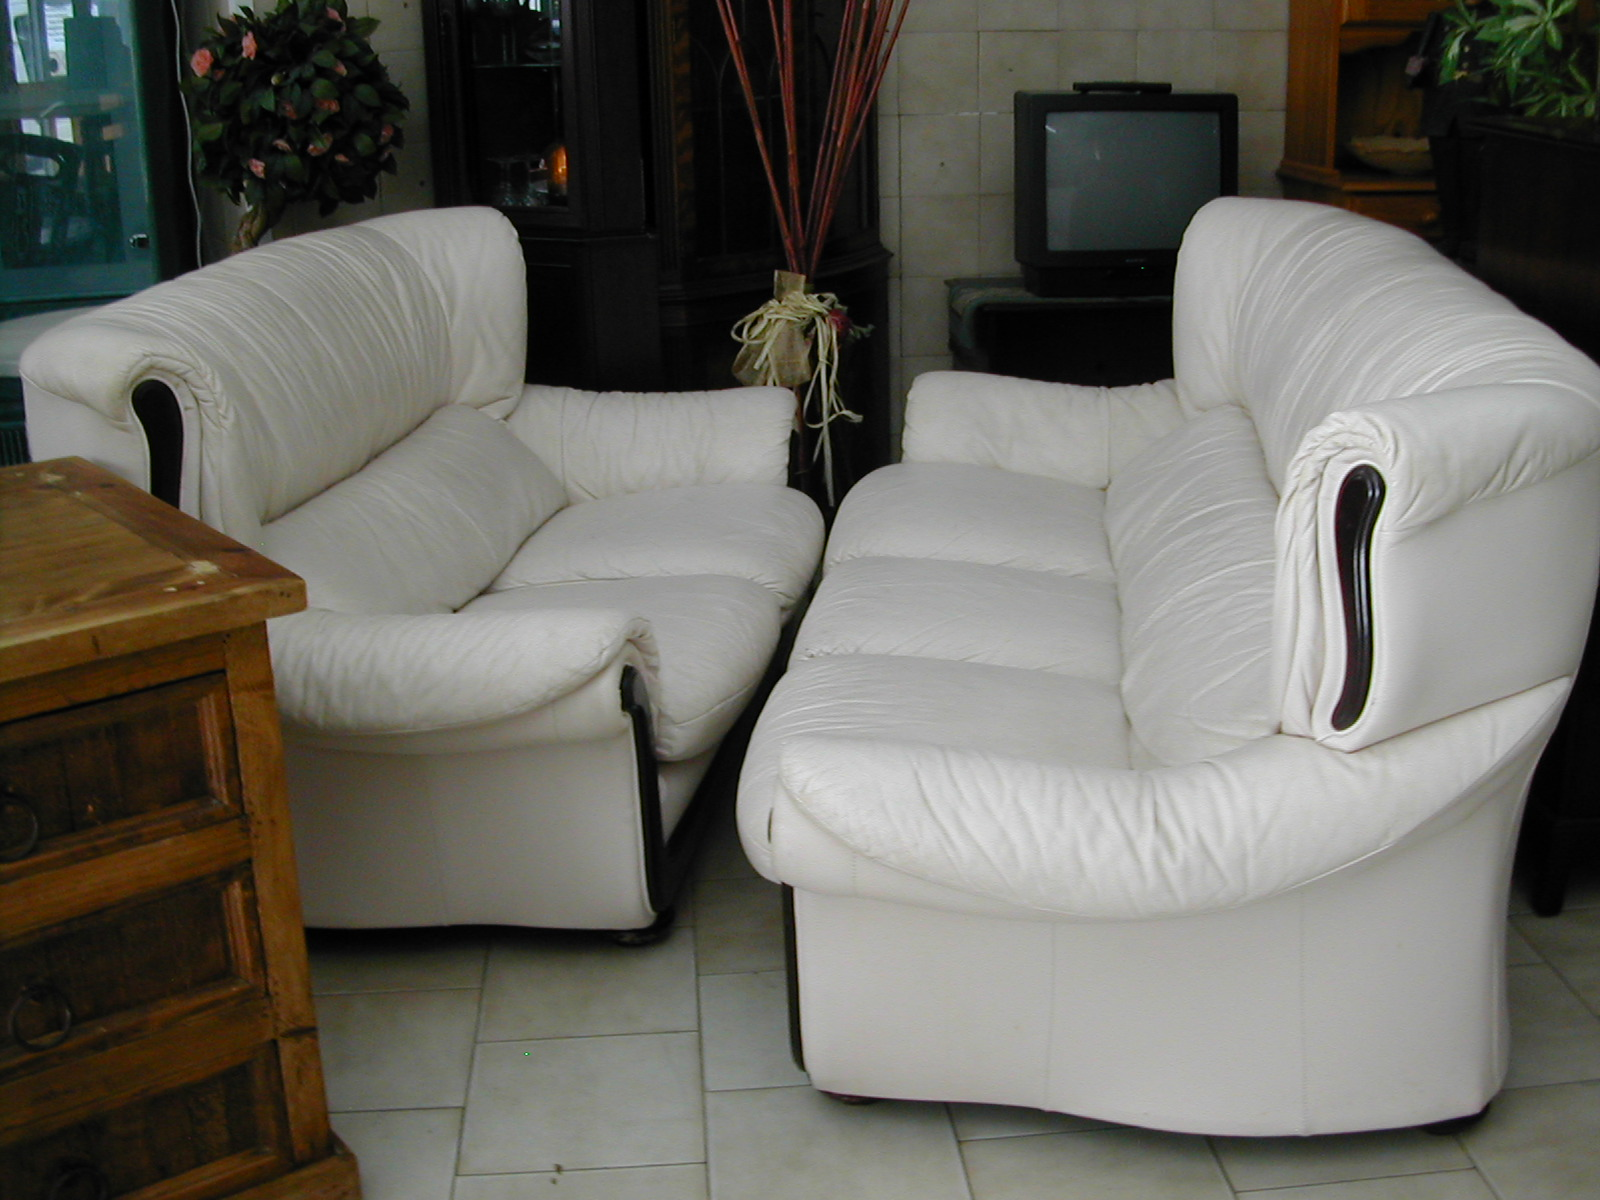 Matching 3 Seater Sofa And 2 Seater Sofa Nerja Household Centre Second Hand Furniture Nerja